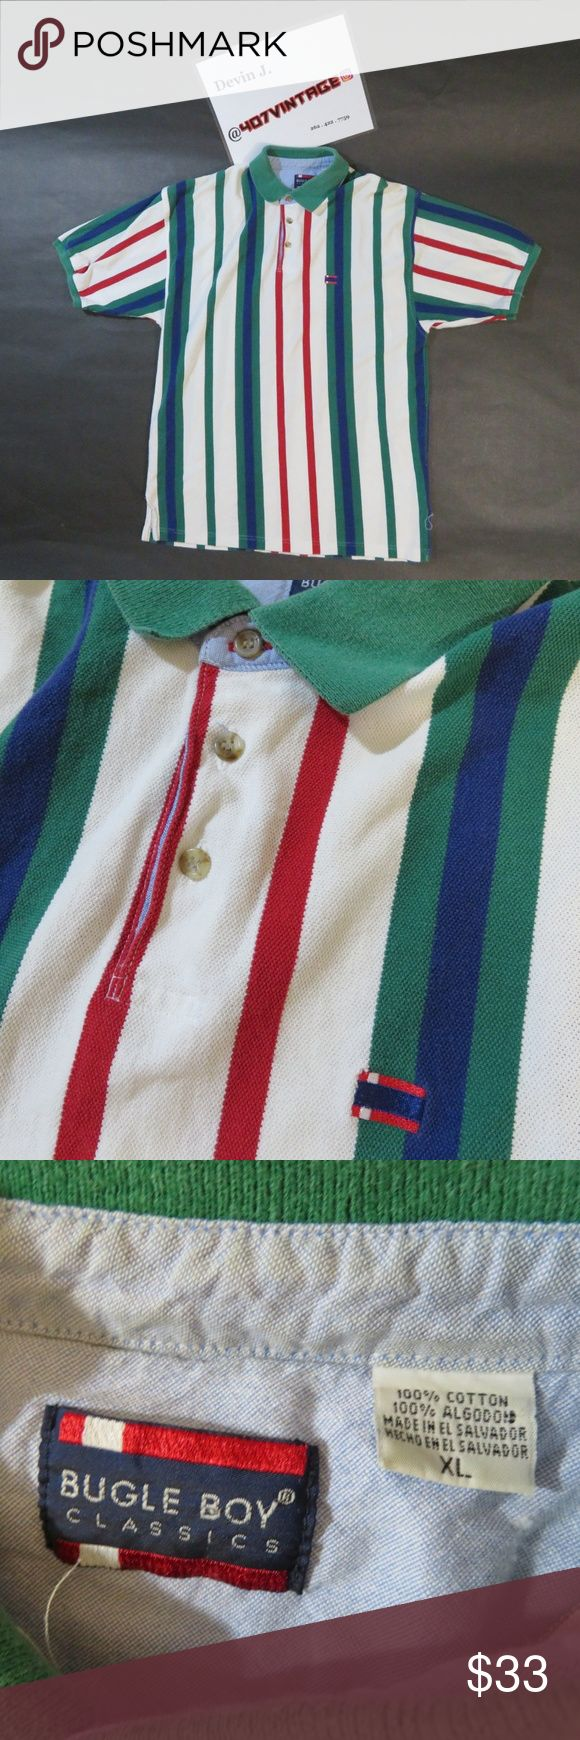 VTG Bugle Boy Polo LARGE Vintage Bugle Boy Classics Vertical Striped Off White Red Blue Green Polo Shirt | MENS Size XL | Great used condition, slight fading from age Bugle Boy Shirts Polos